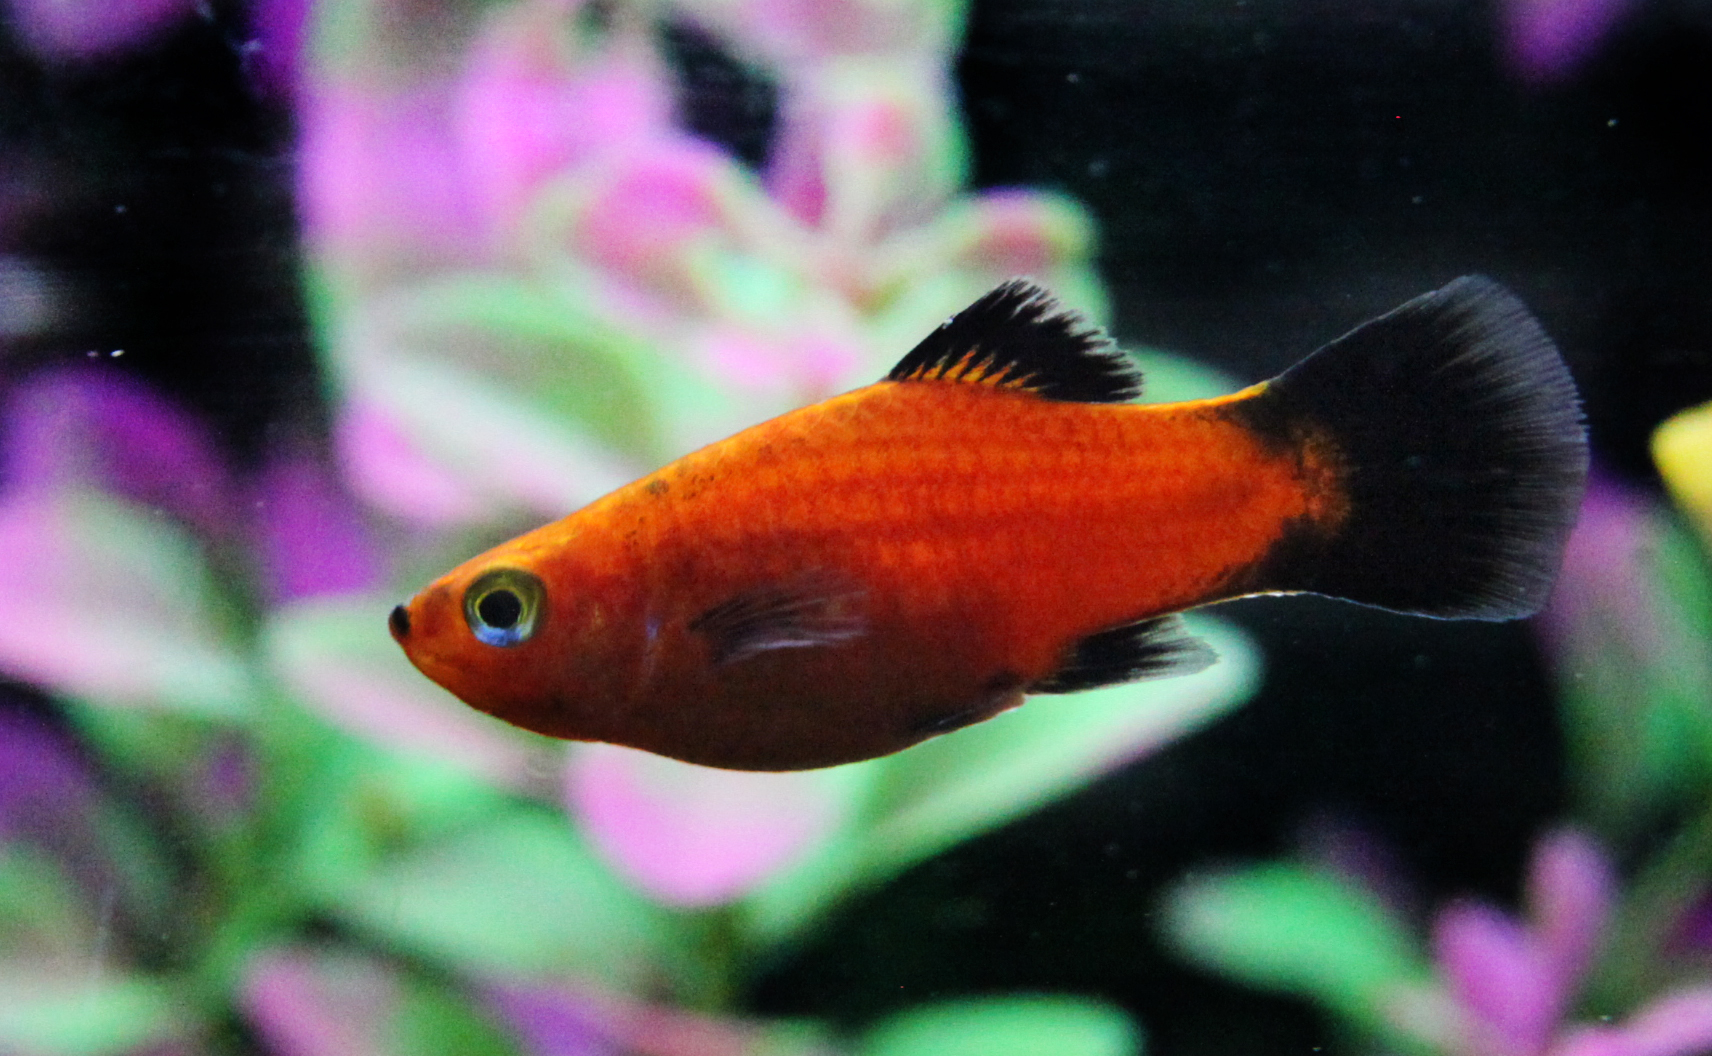 Freshwater aquarium fish mating - Platy Fish